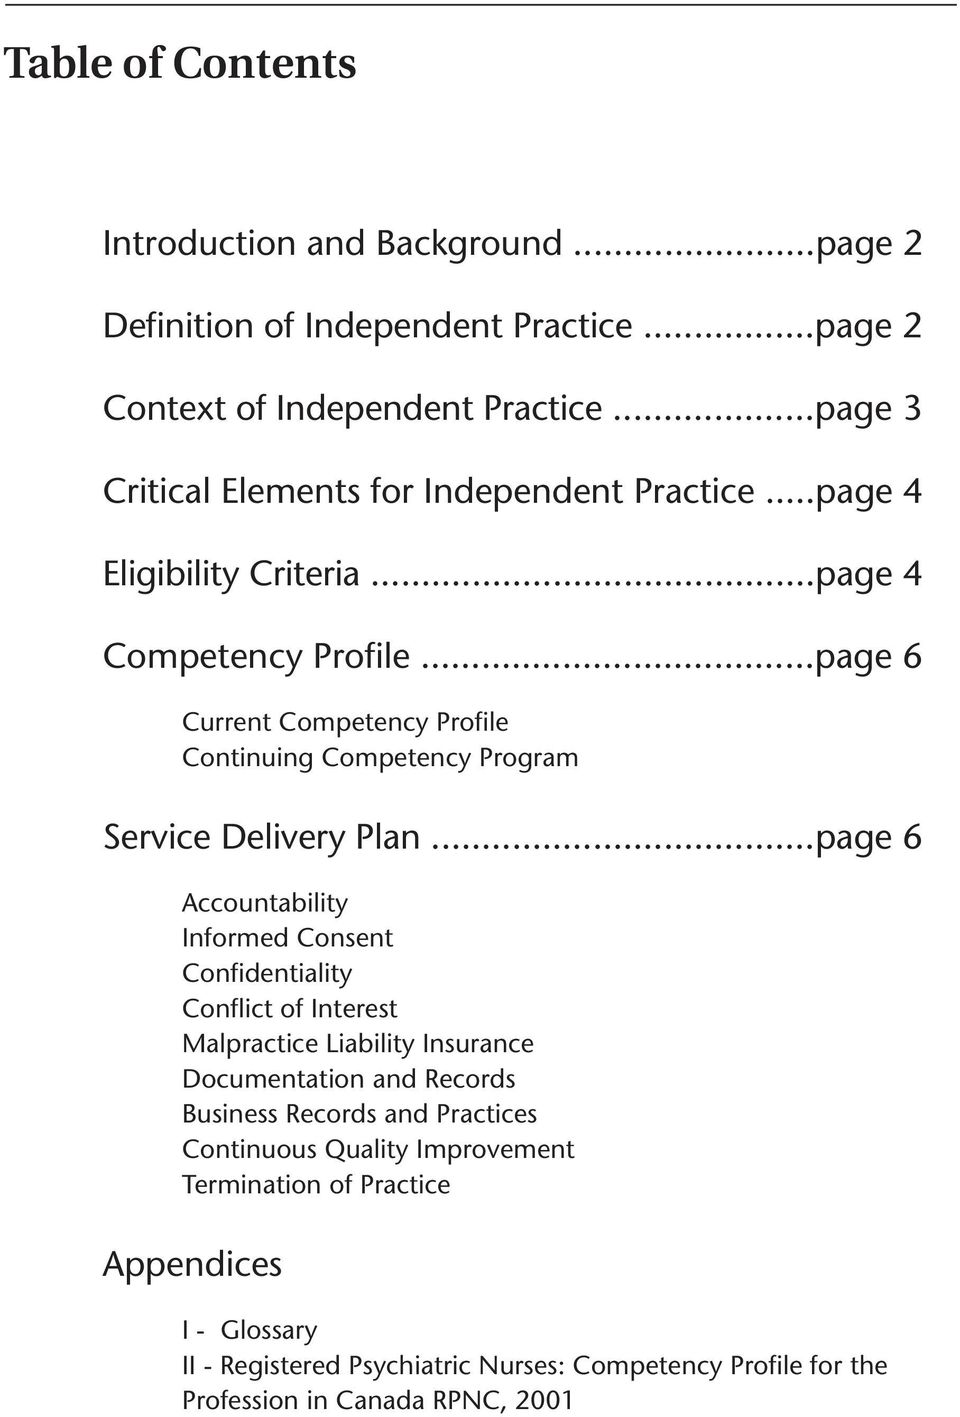 ..page 6 Current Competency Profie Continuing Competency Program Service Deivery Pan.